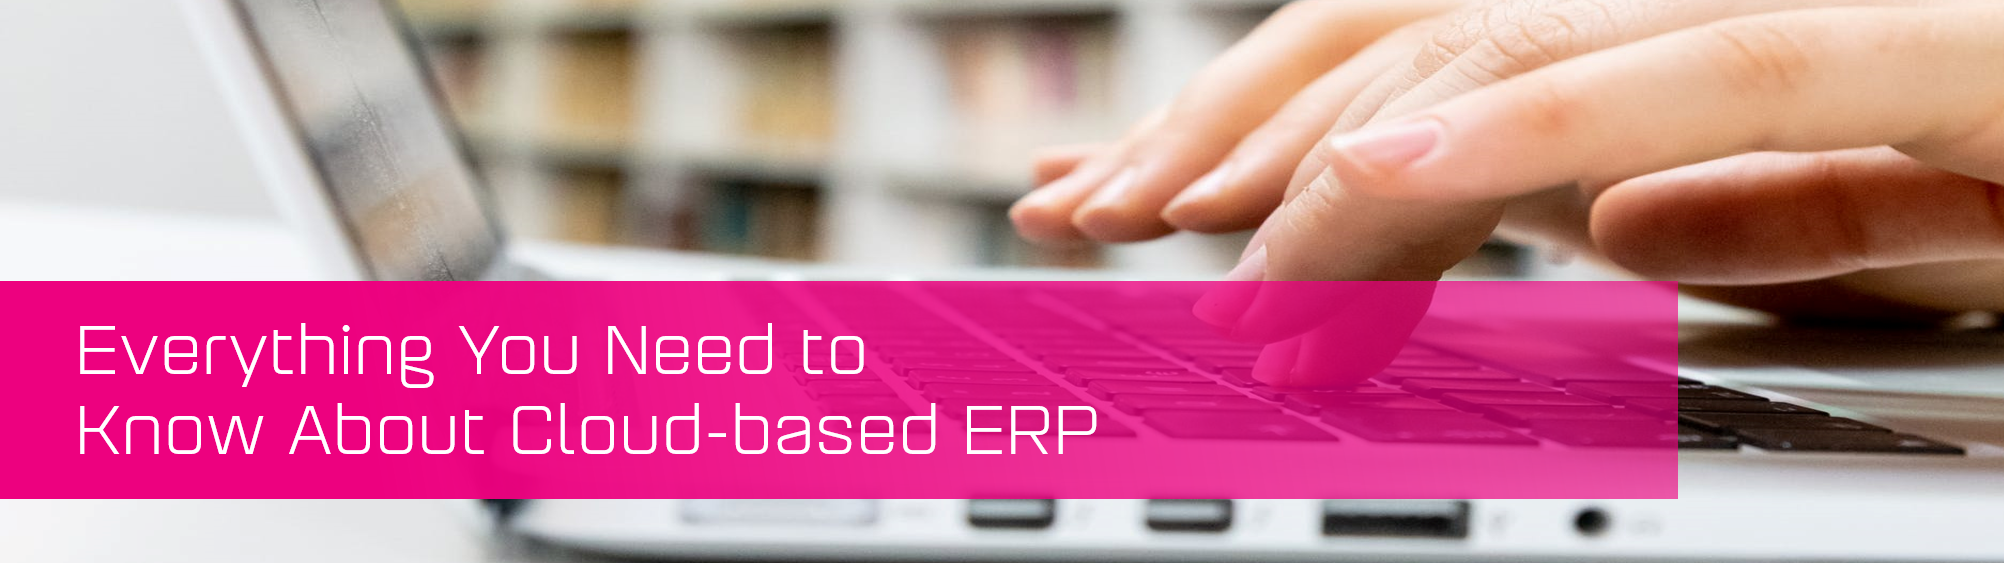 KCS SA - Blog - everything you need to know cloud based erp banner